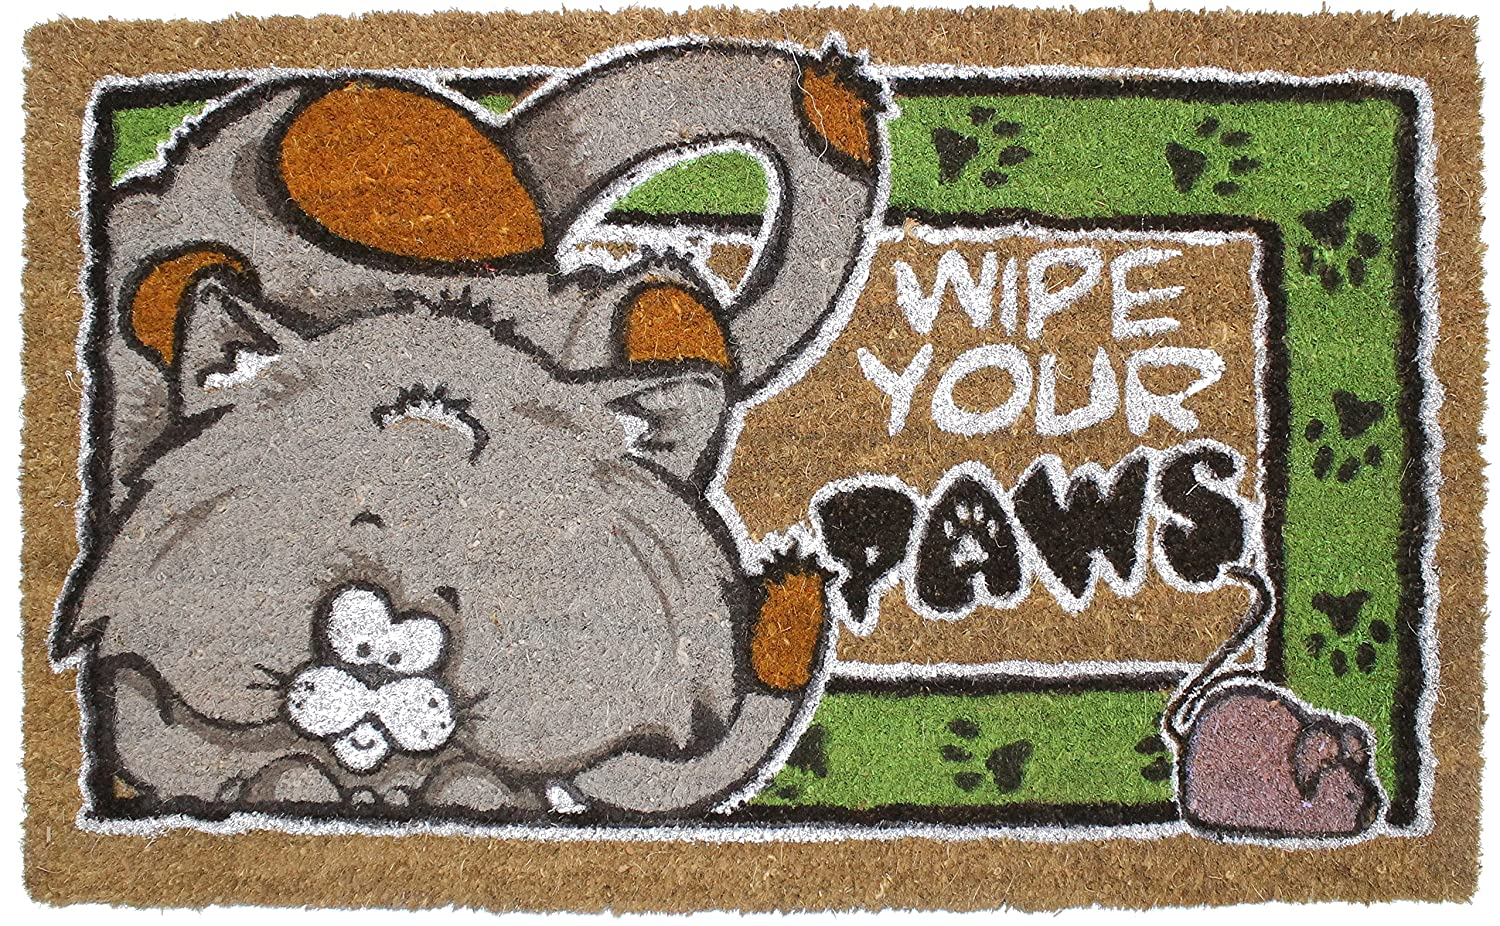 "J&M Home Fashions Pet Friendly Accent Mat, 18x30"", Heavy Duty Entry Way Doormat or Shoes Scraper Patio Rug Dirt Debris Mud Trapper Waterproof - Wipe Your Cat Paws"